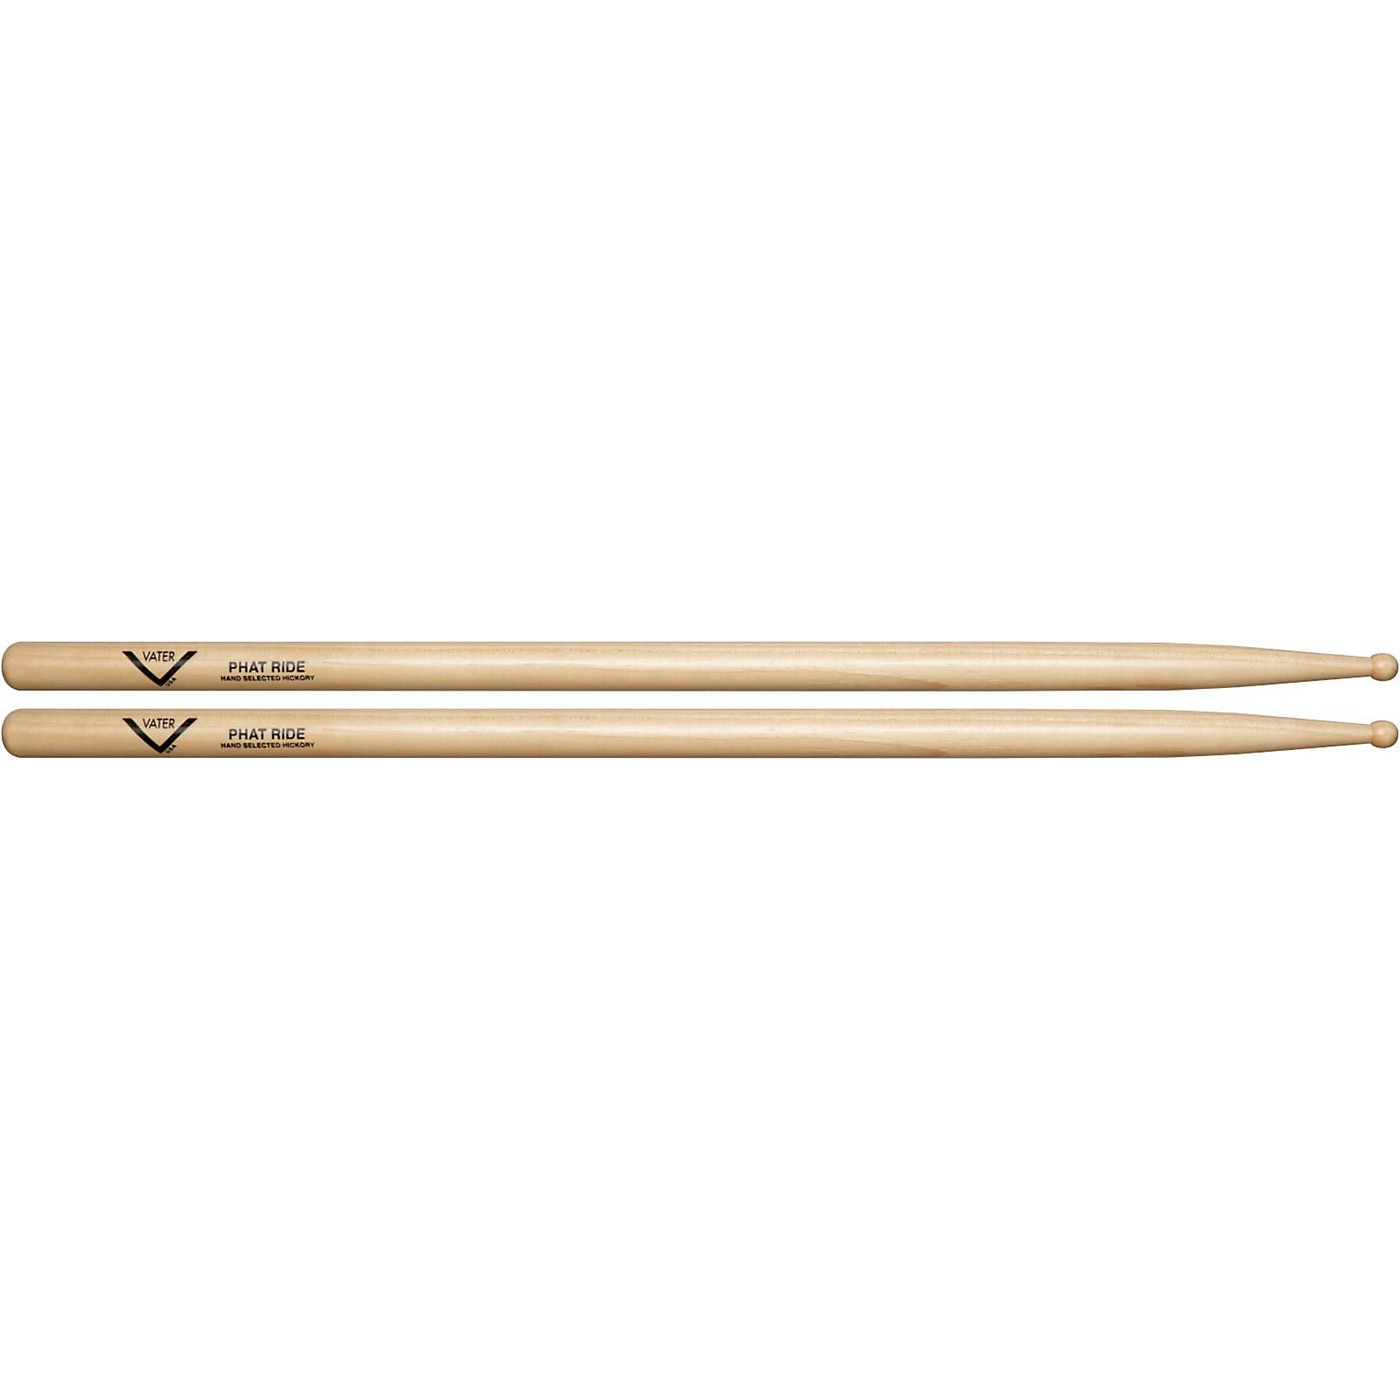 Vater American Hickory Phat Ride Drumsticks thumbnail